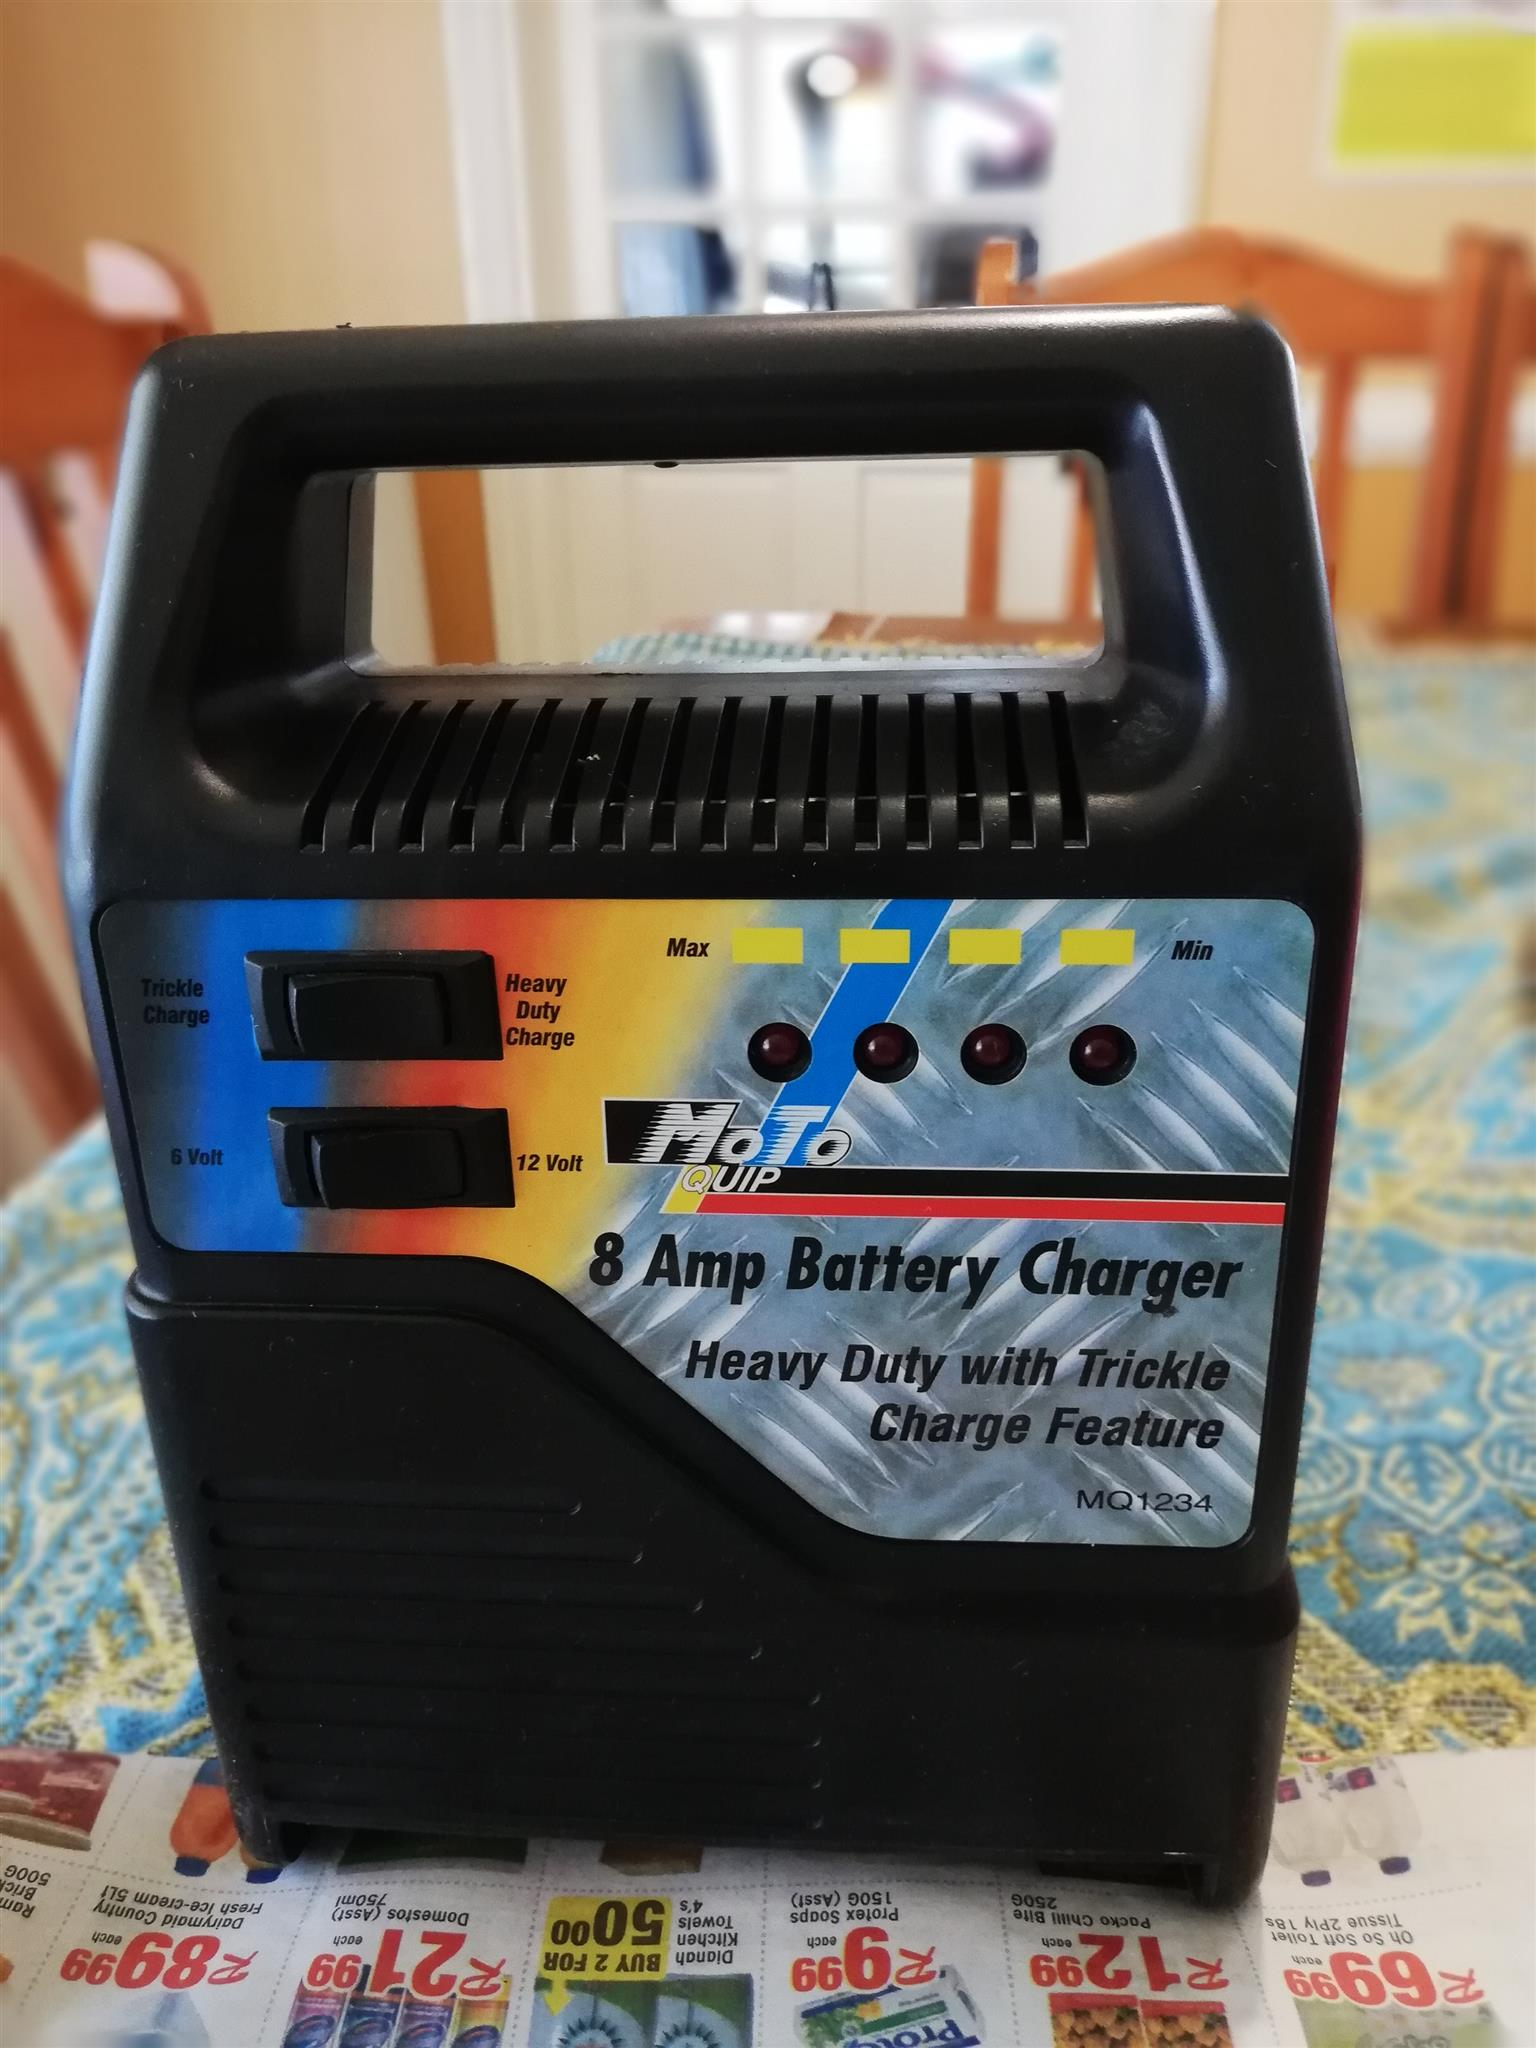 8amp BATTERY CHARGER for sale